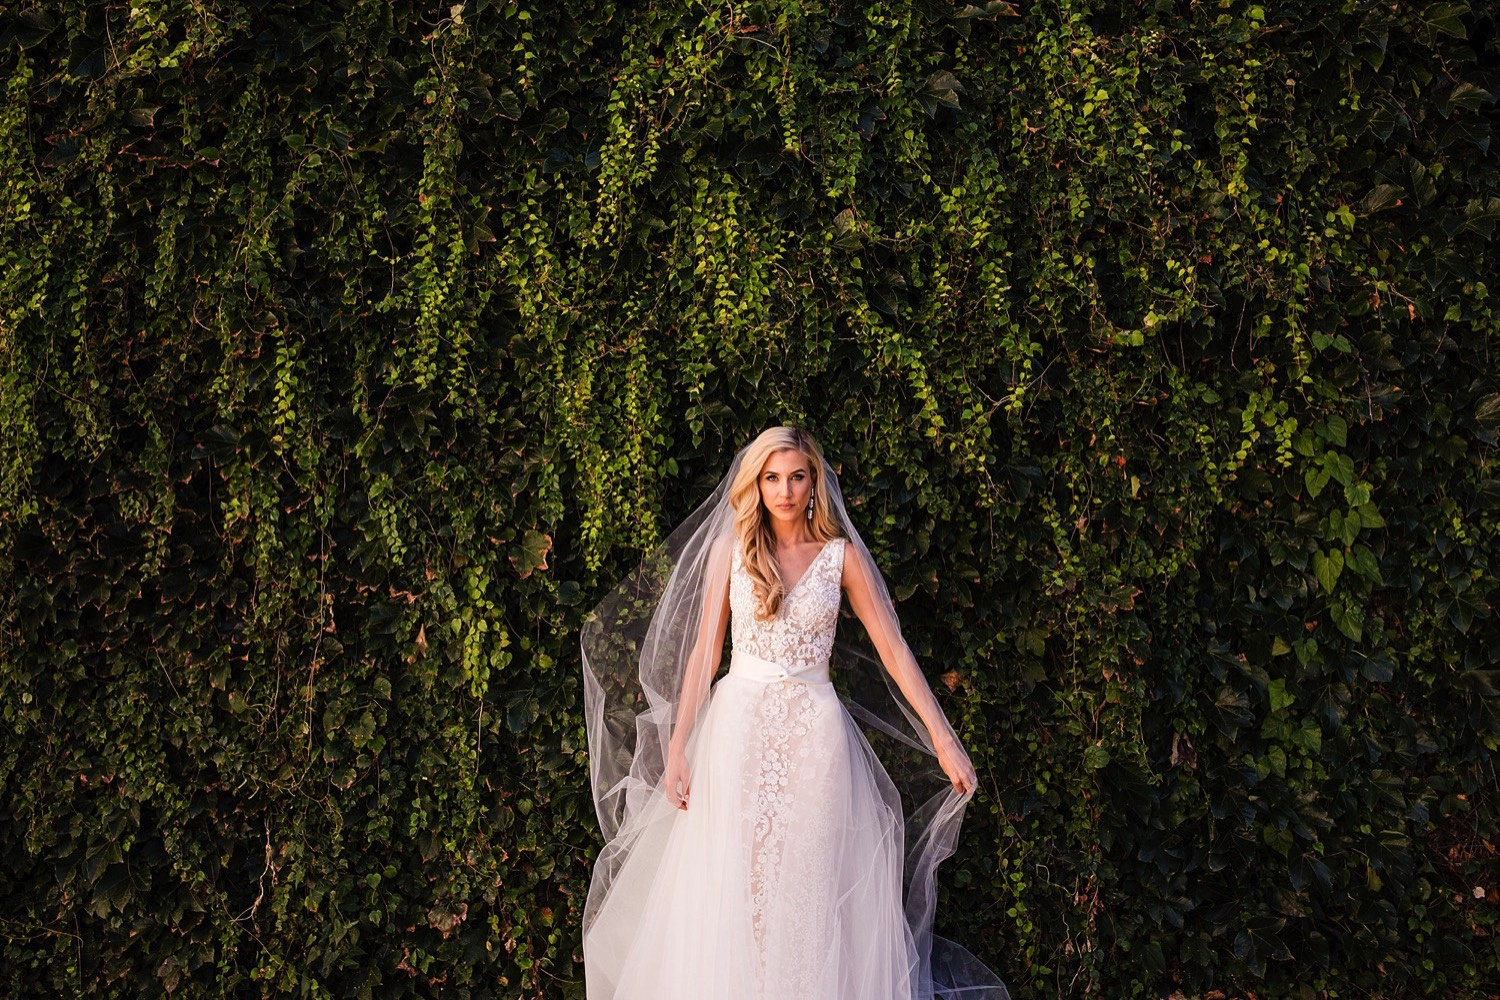 Rebecca Goldsmith Downtown Des Moines Wedding by Anna Jones Photography